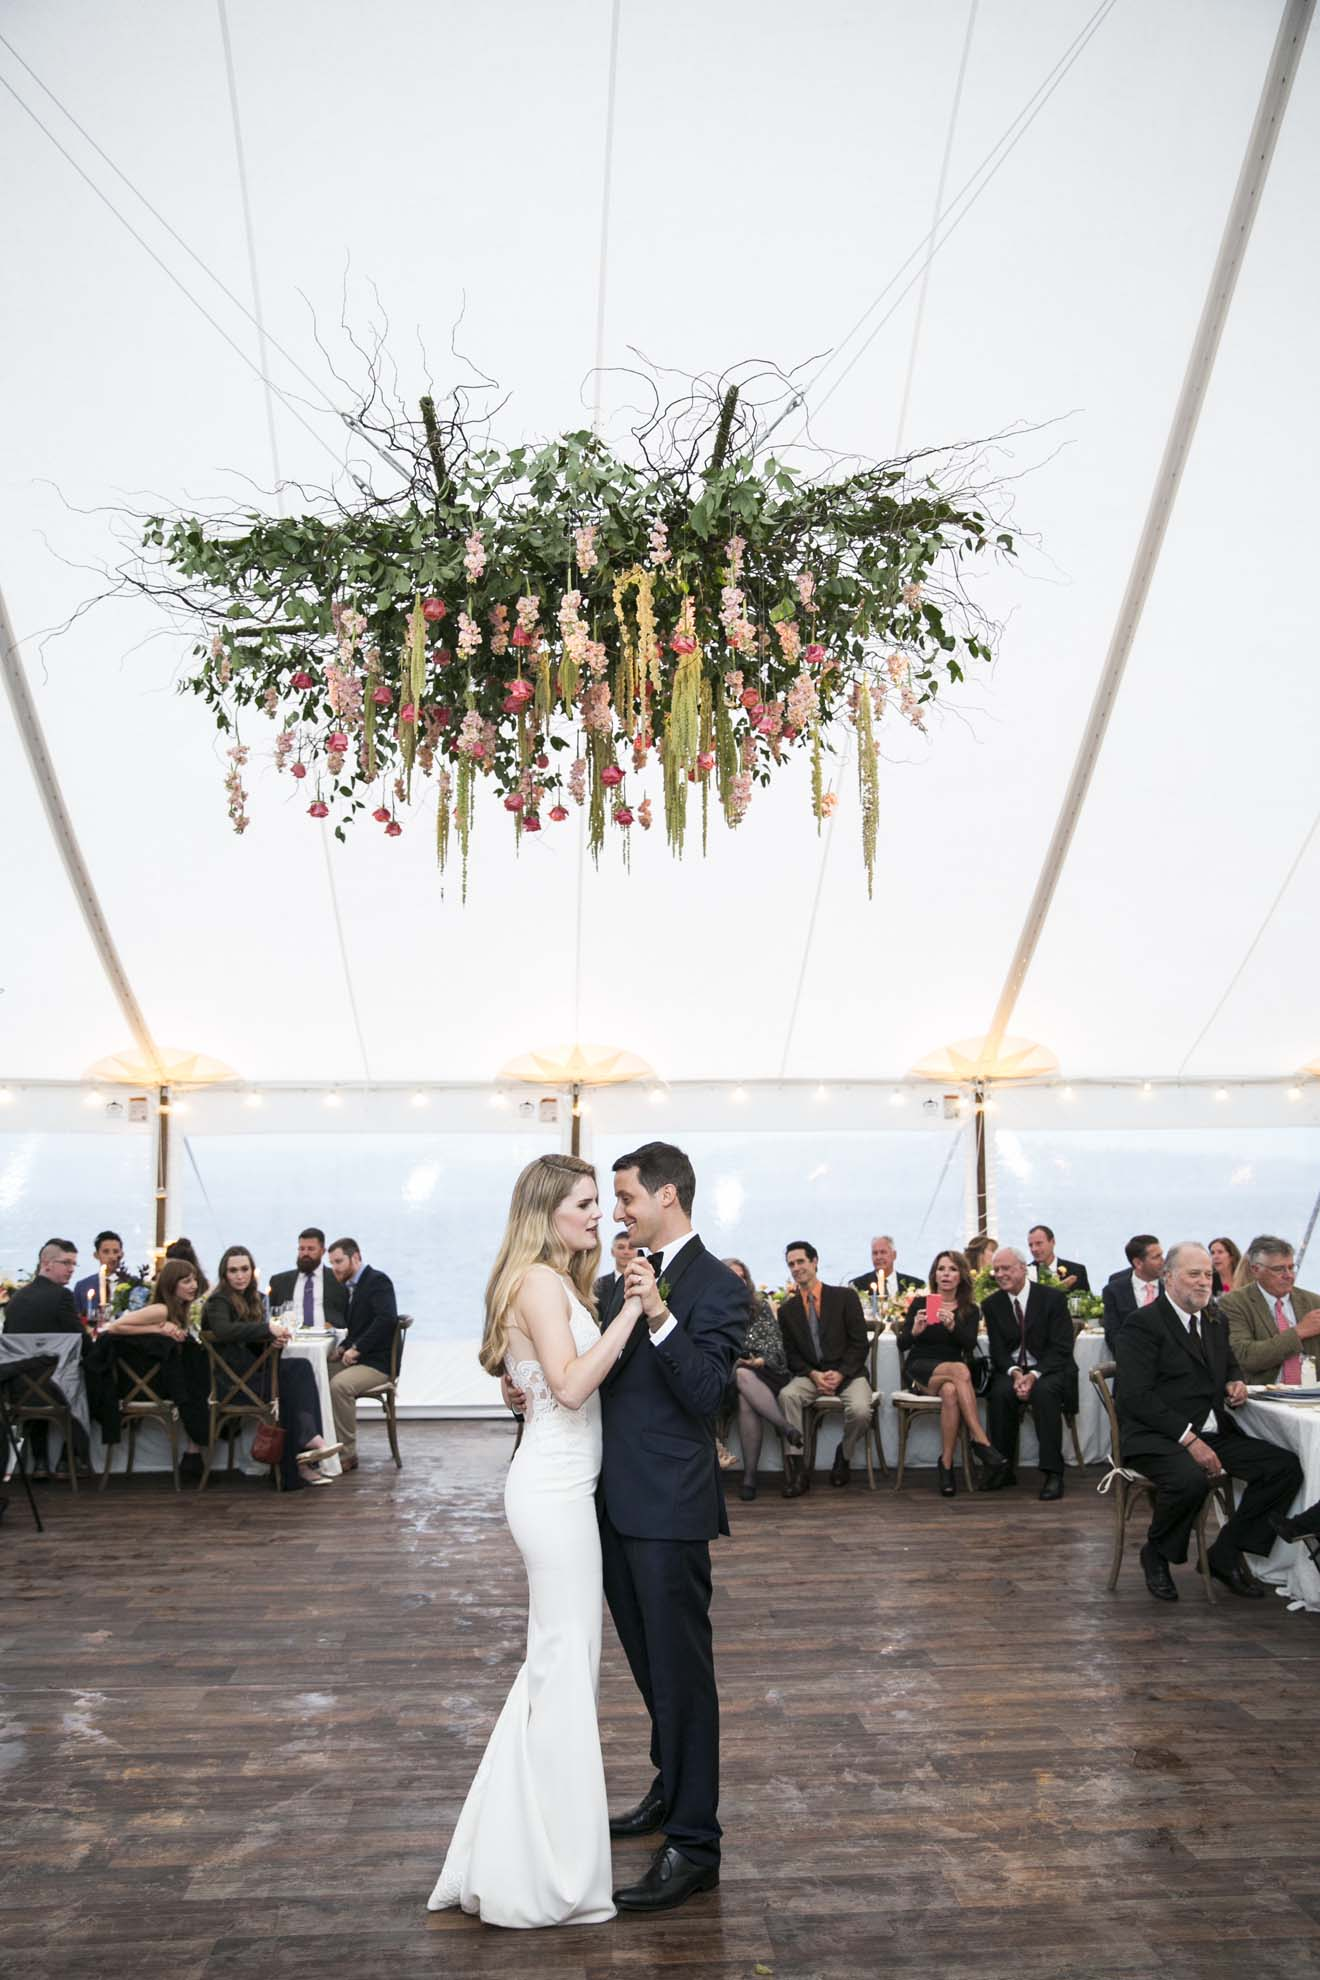 Wedding couple dancing in wedding tent with large floral chandeliers above dance floor - A Pacific Northwest Wedding by Flora Nova Design